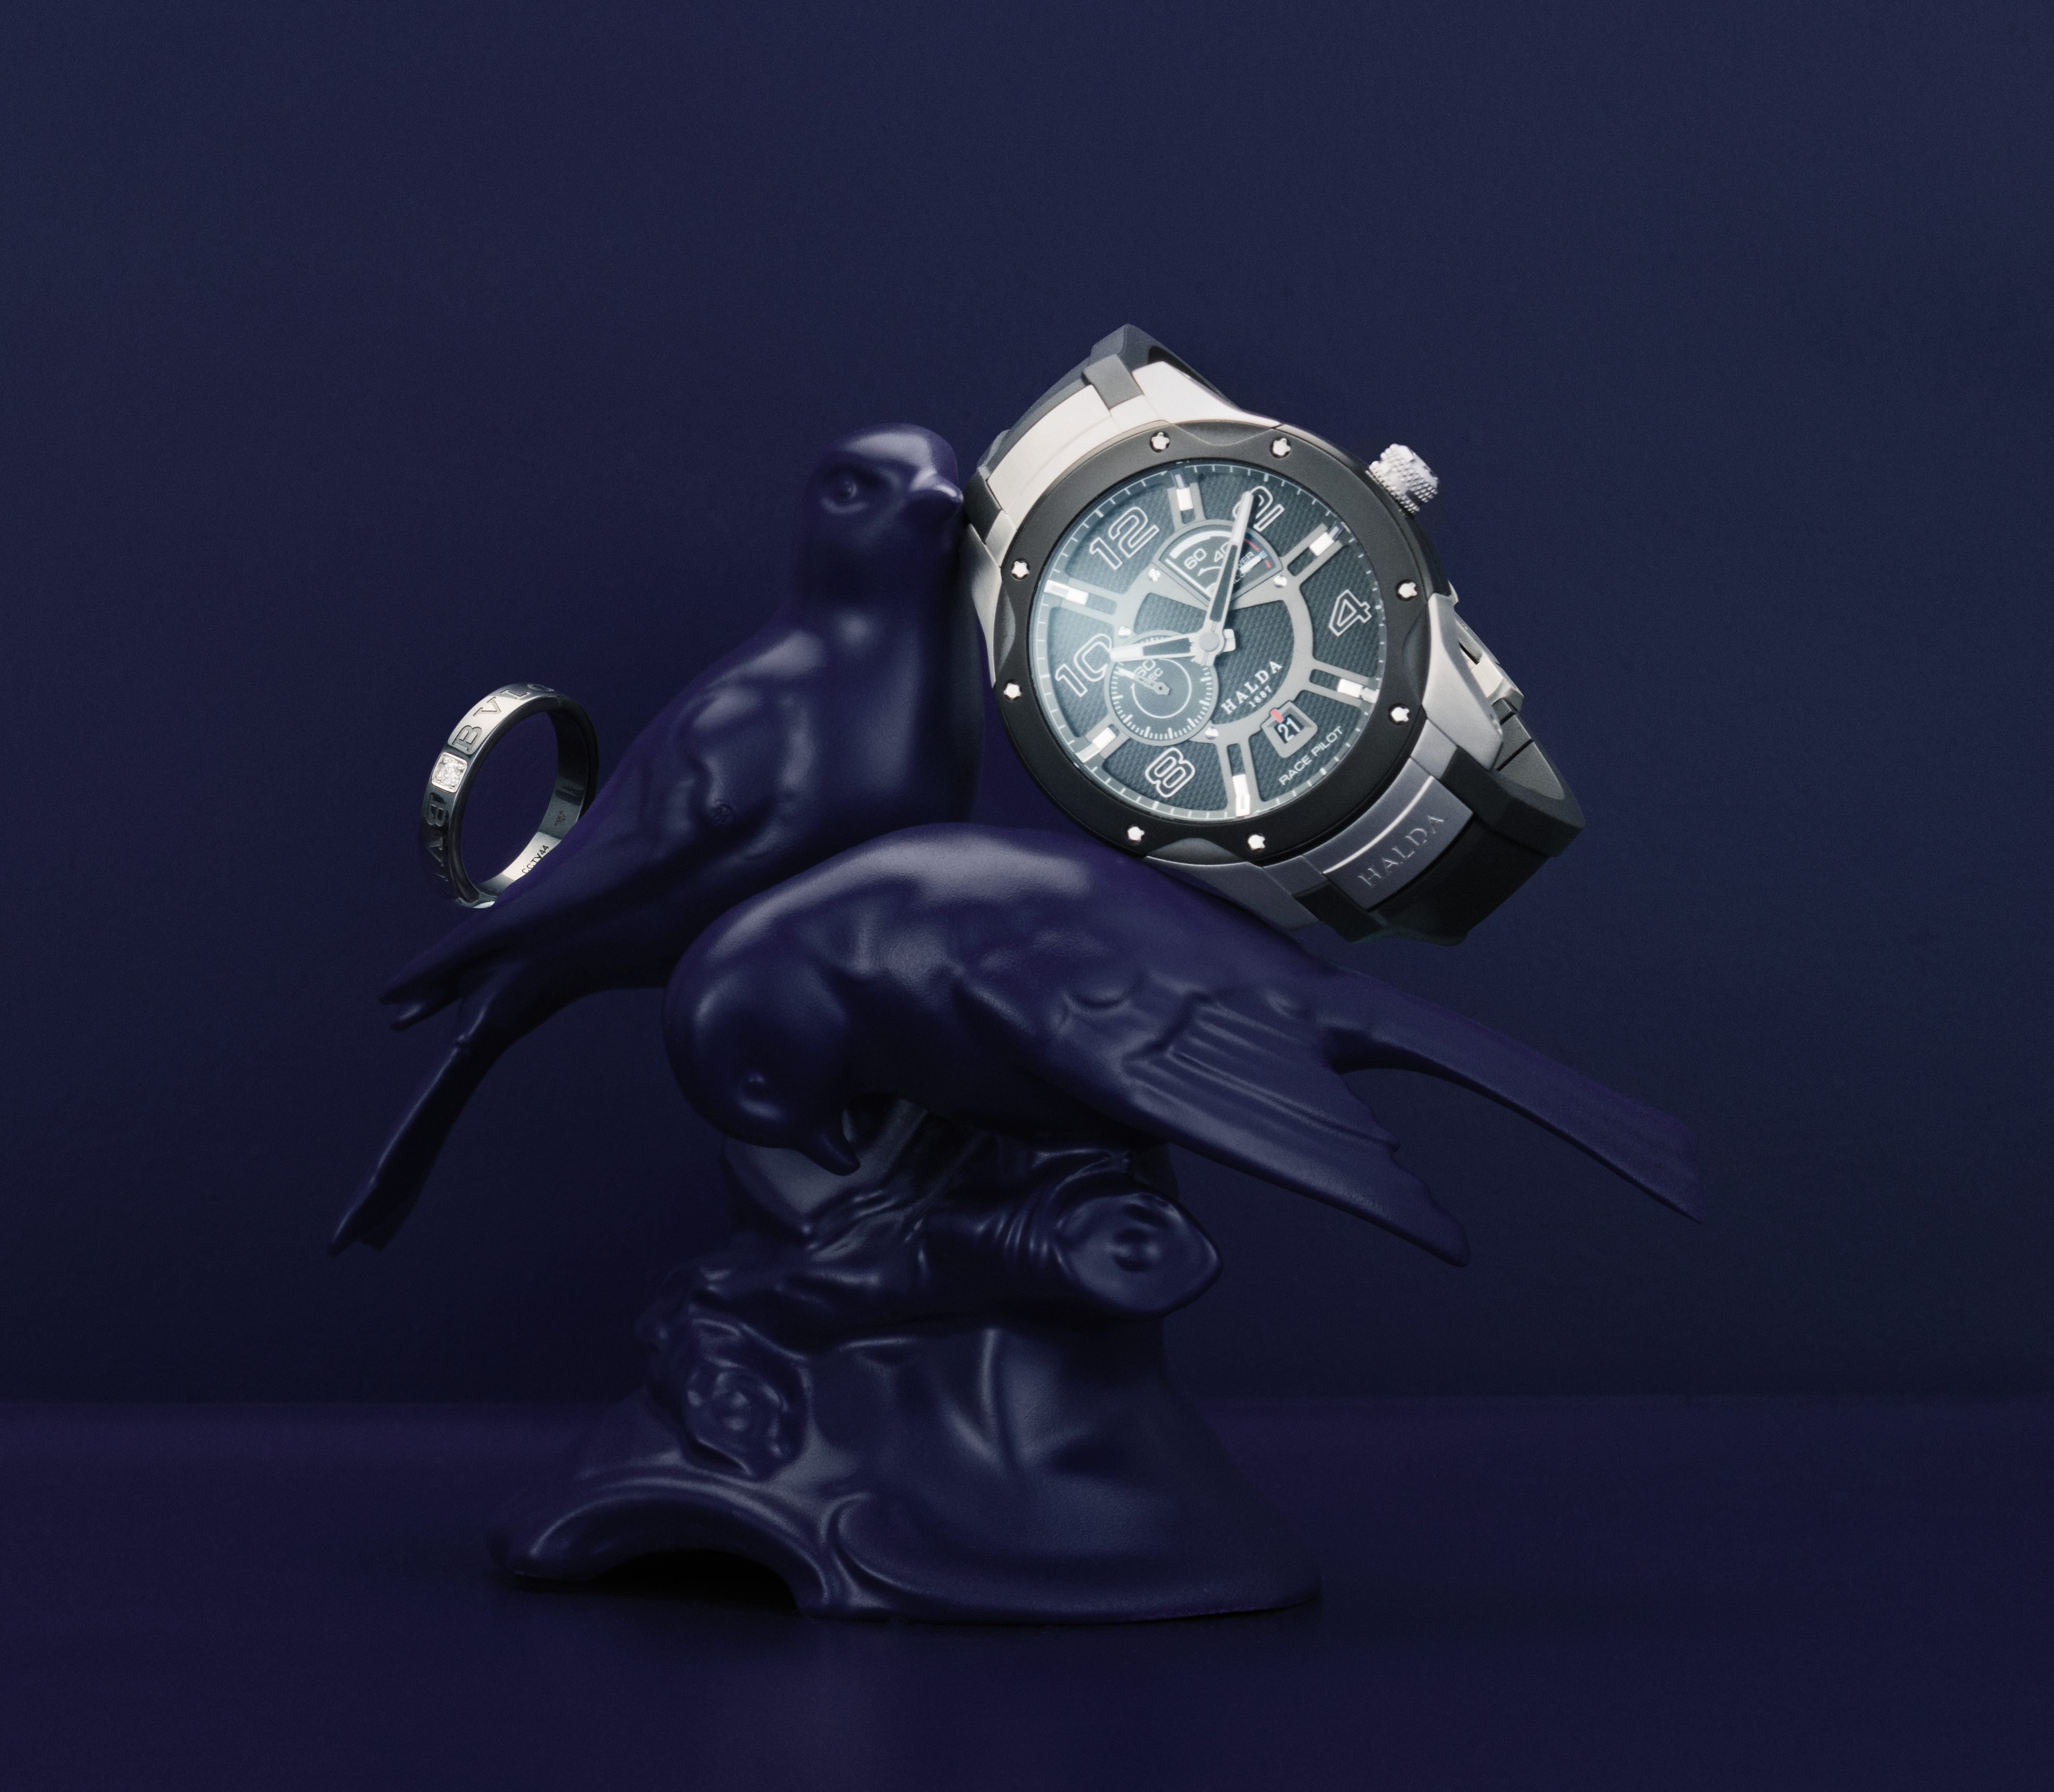 Halda Race Pilot RPM-3 with analog  and digital faces and a Zenith movement,  price app. 13,400 USD, Nymans Ur 1851. Ring from Bvlgari in ceramic  with diamond, 0,20 ct,  price app. 1,400 USD, Bo Berggren Urhandel.